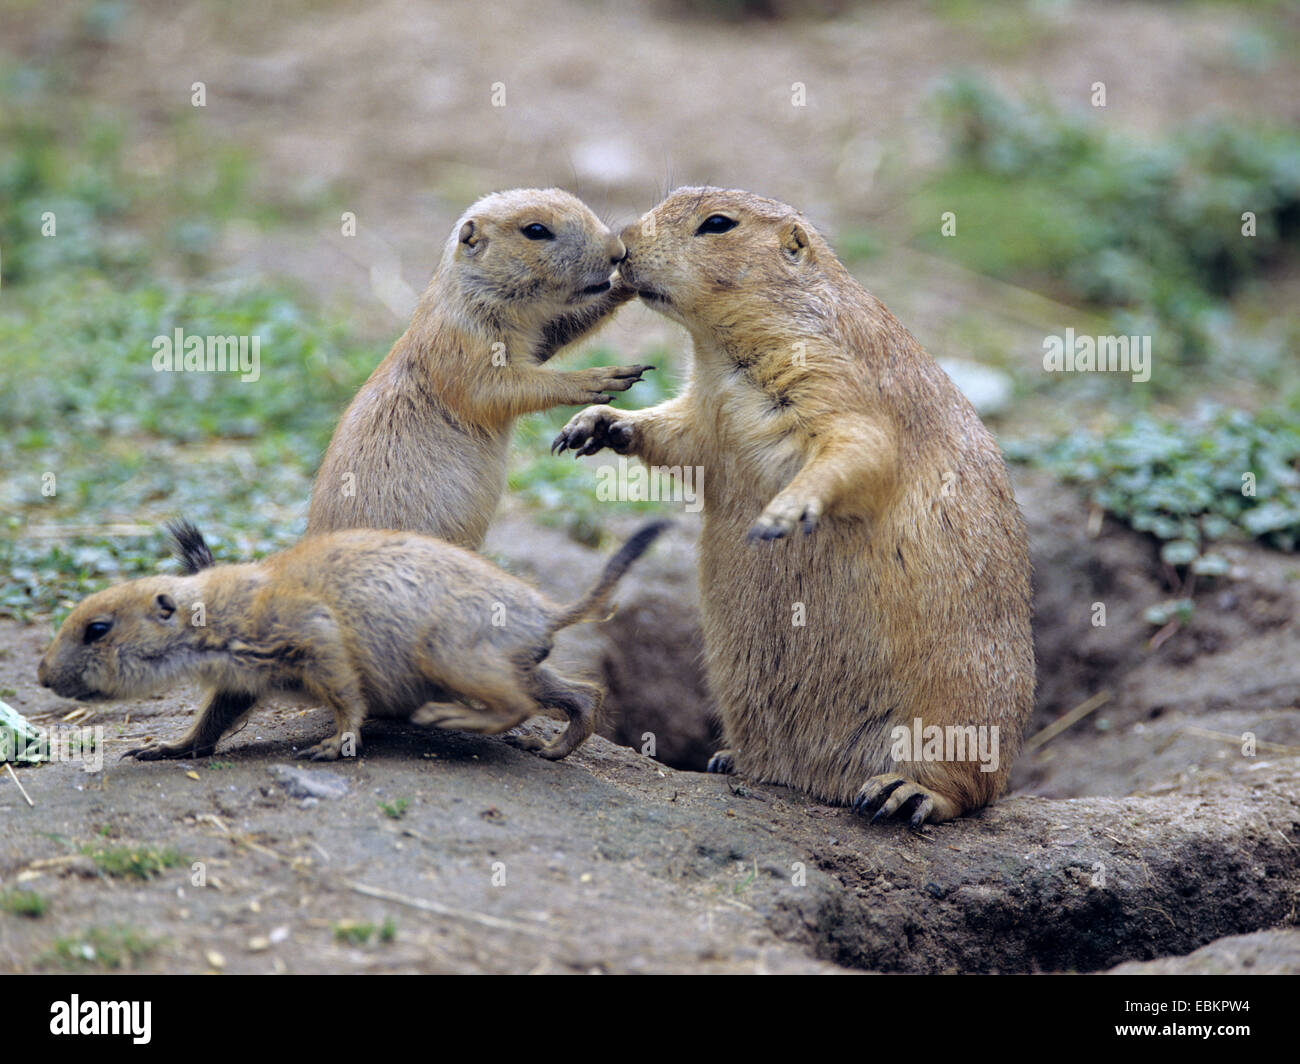 black-tailed prairie dog, Plains prairie dog (Cynomys ludovicianus), with young animals at the den - Stock Image